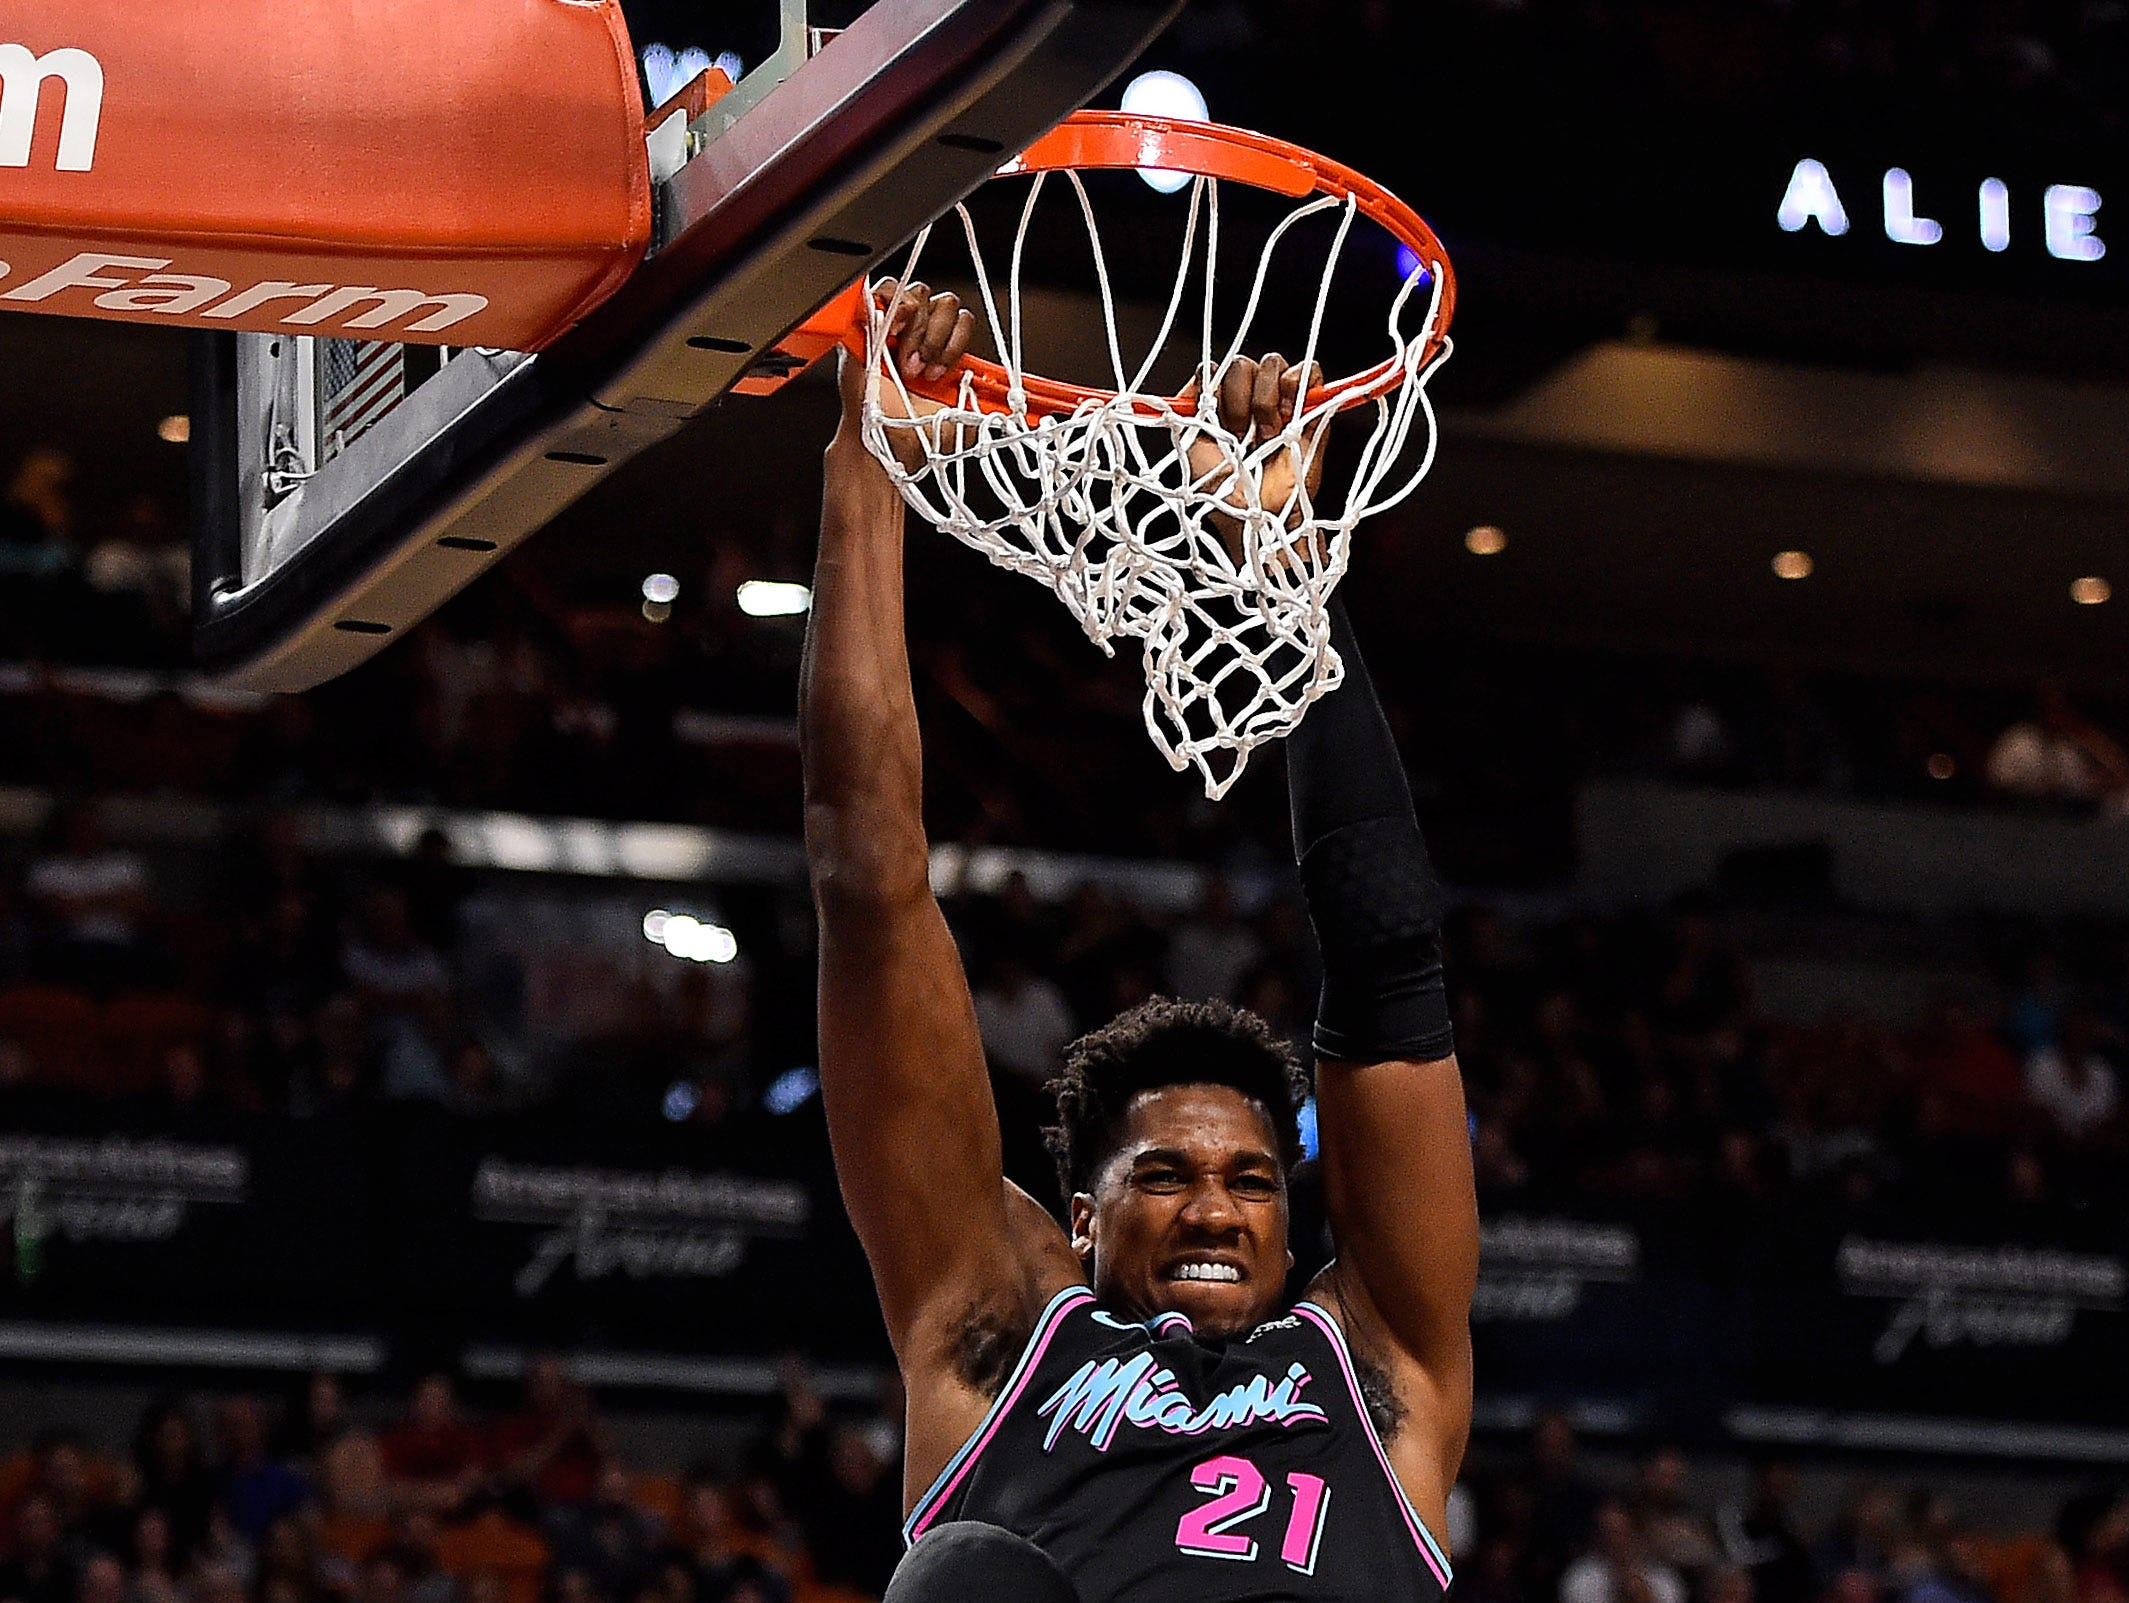 Nov. 20: Miami Heat center Hassan Whiteside finishes a dunk against the Brooklyn Nets during the first half at American Airlines Arena.